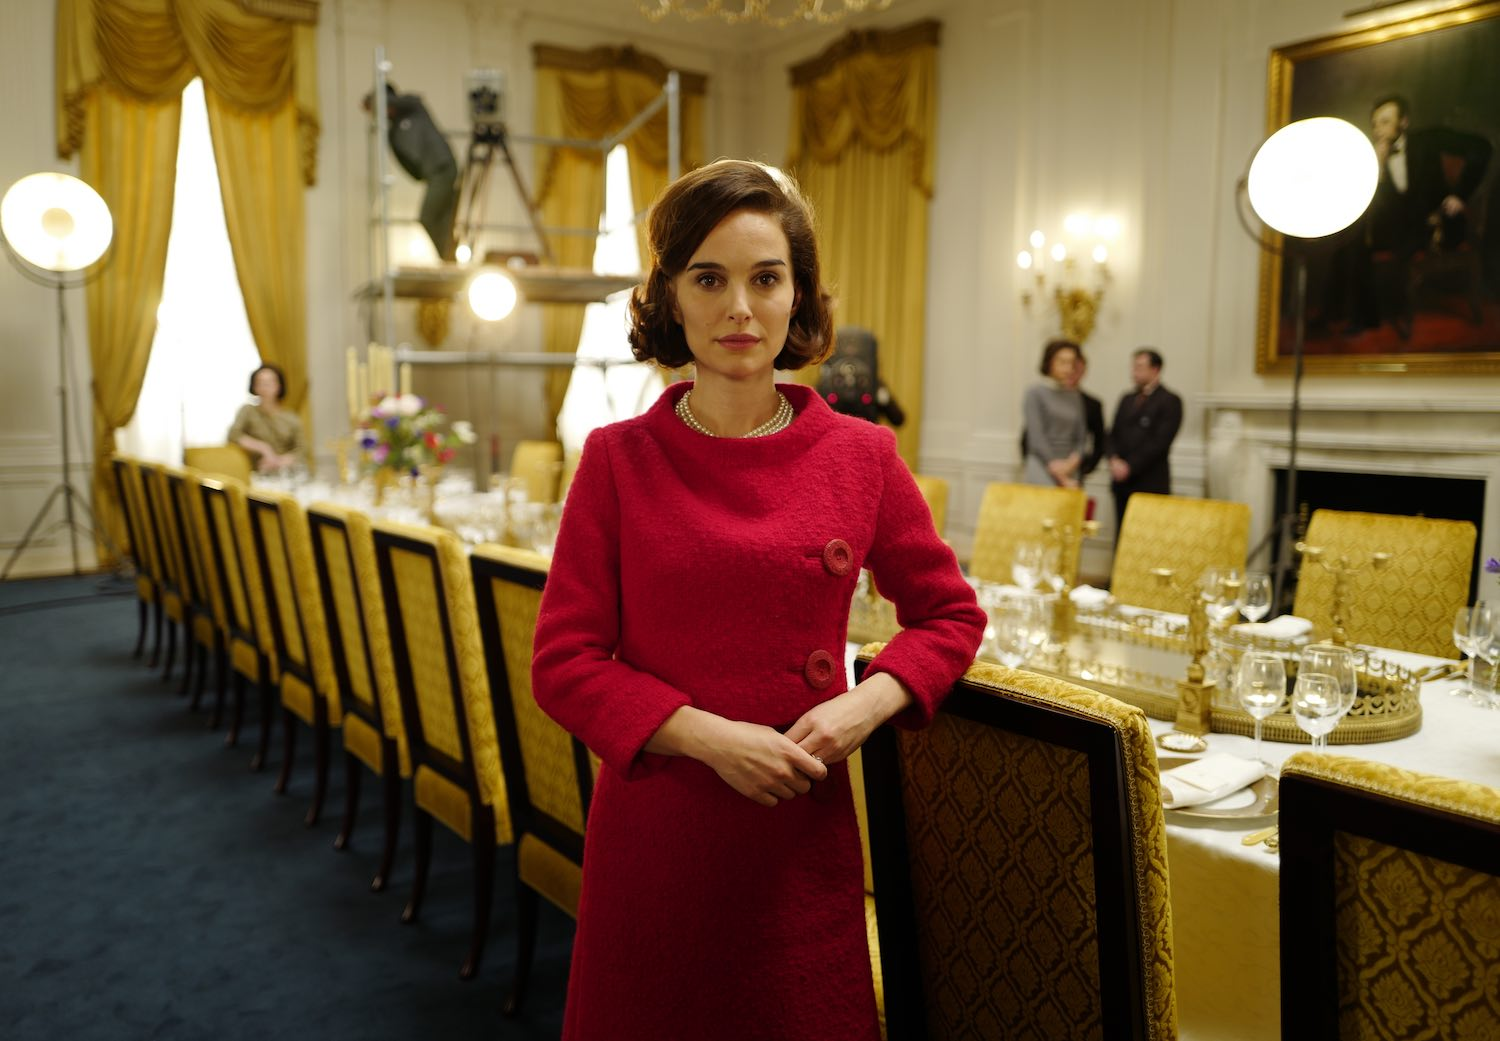 Palm Springs Film Festival honors Natalie Portman for 'Jackie' role